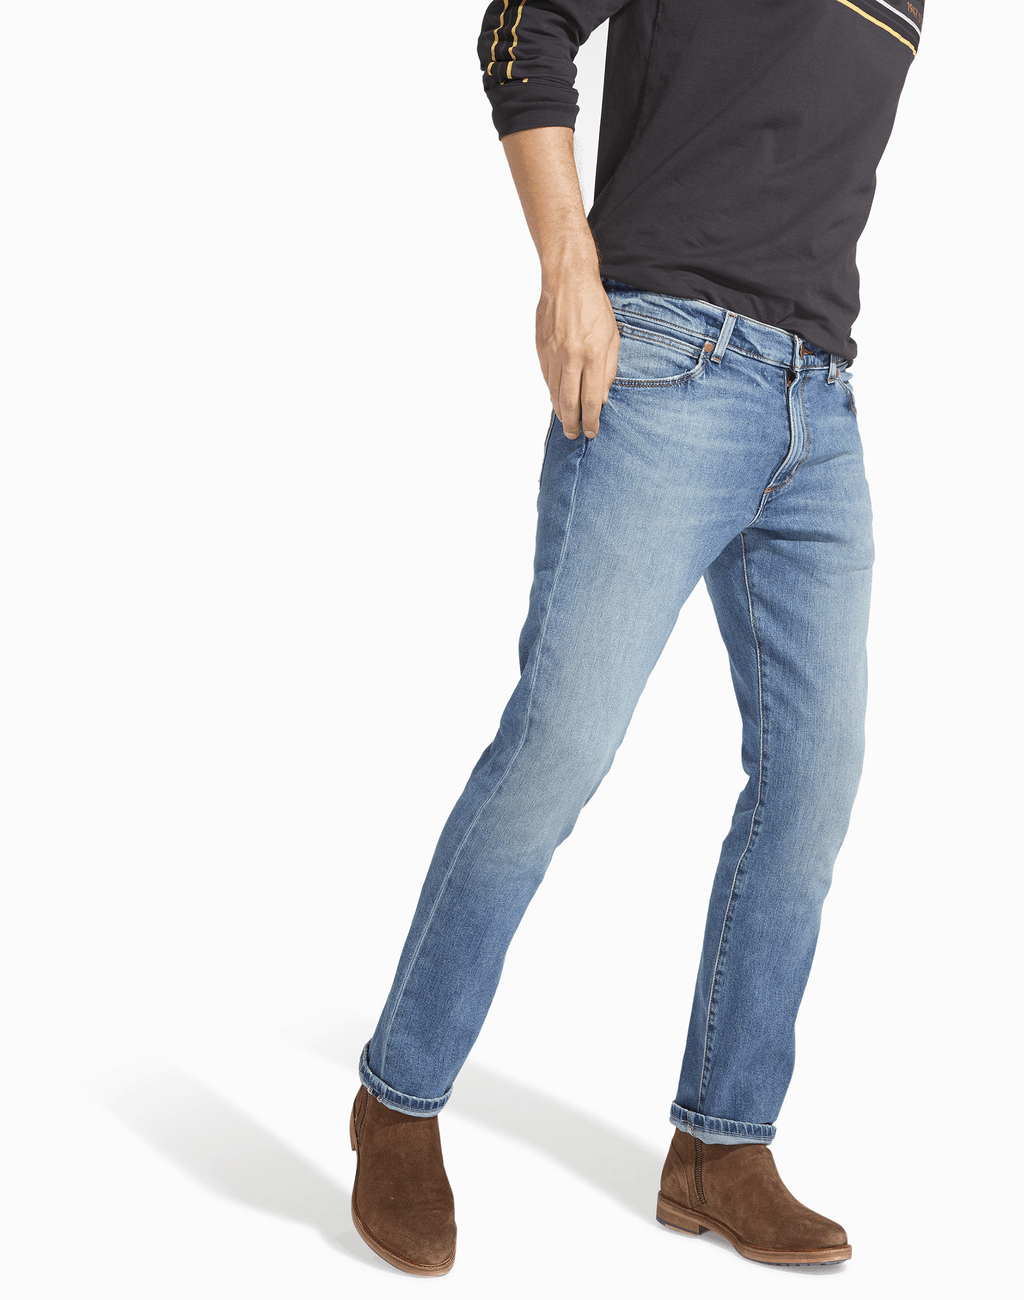 Best Affordable Pants For Men With No Butt-(Guide 2020)